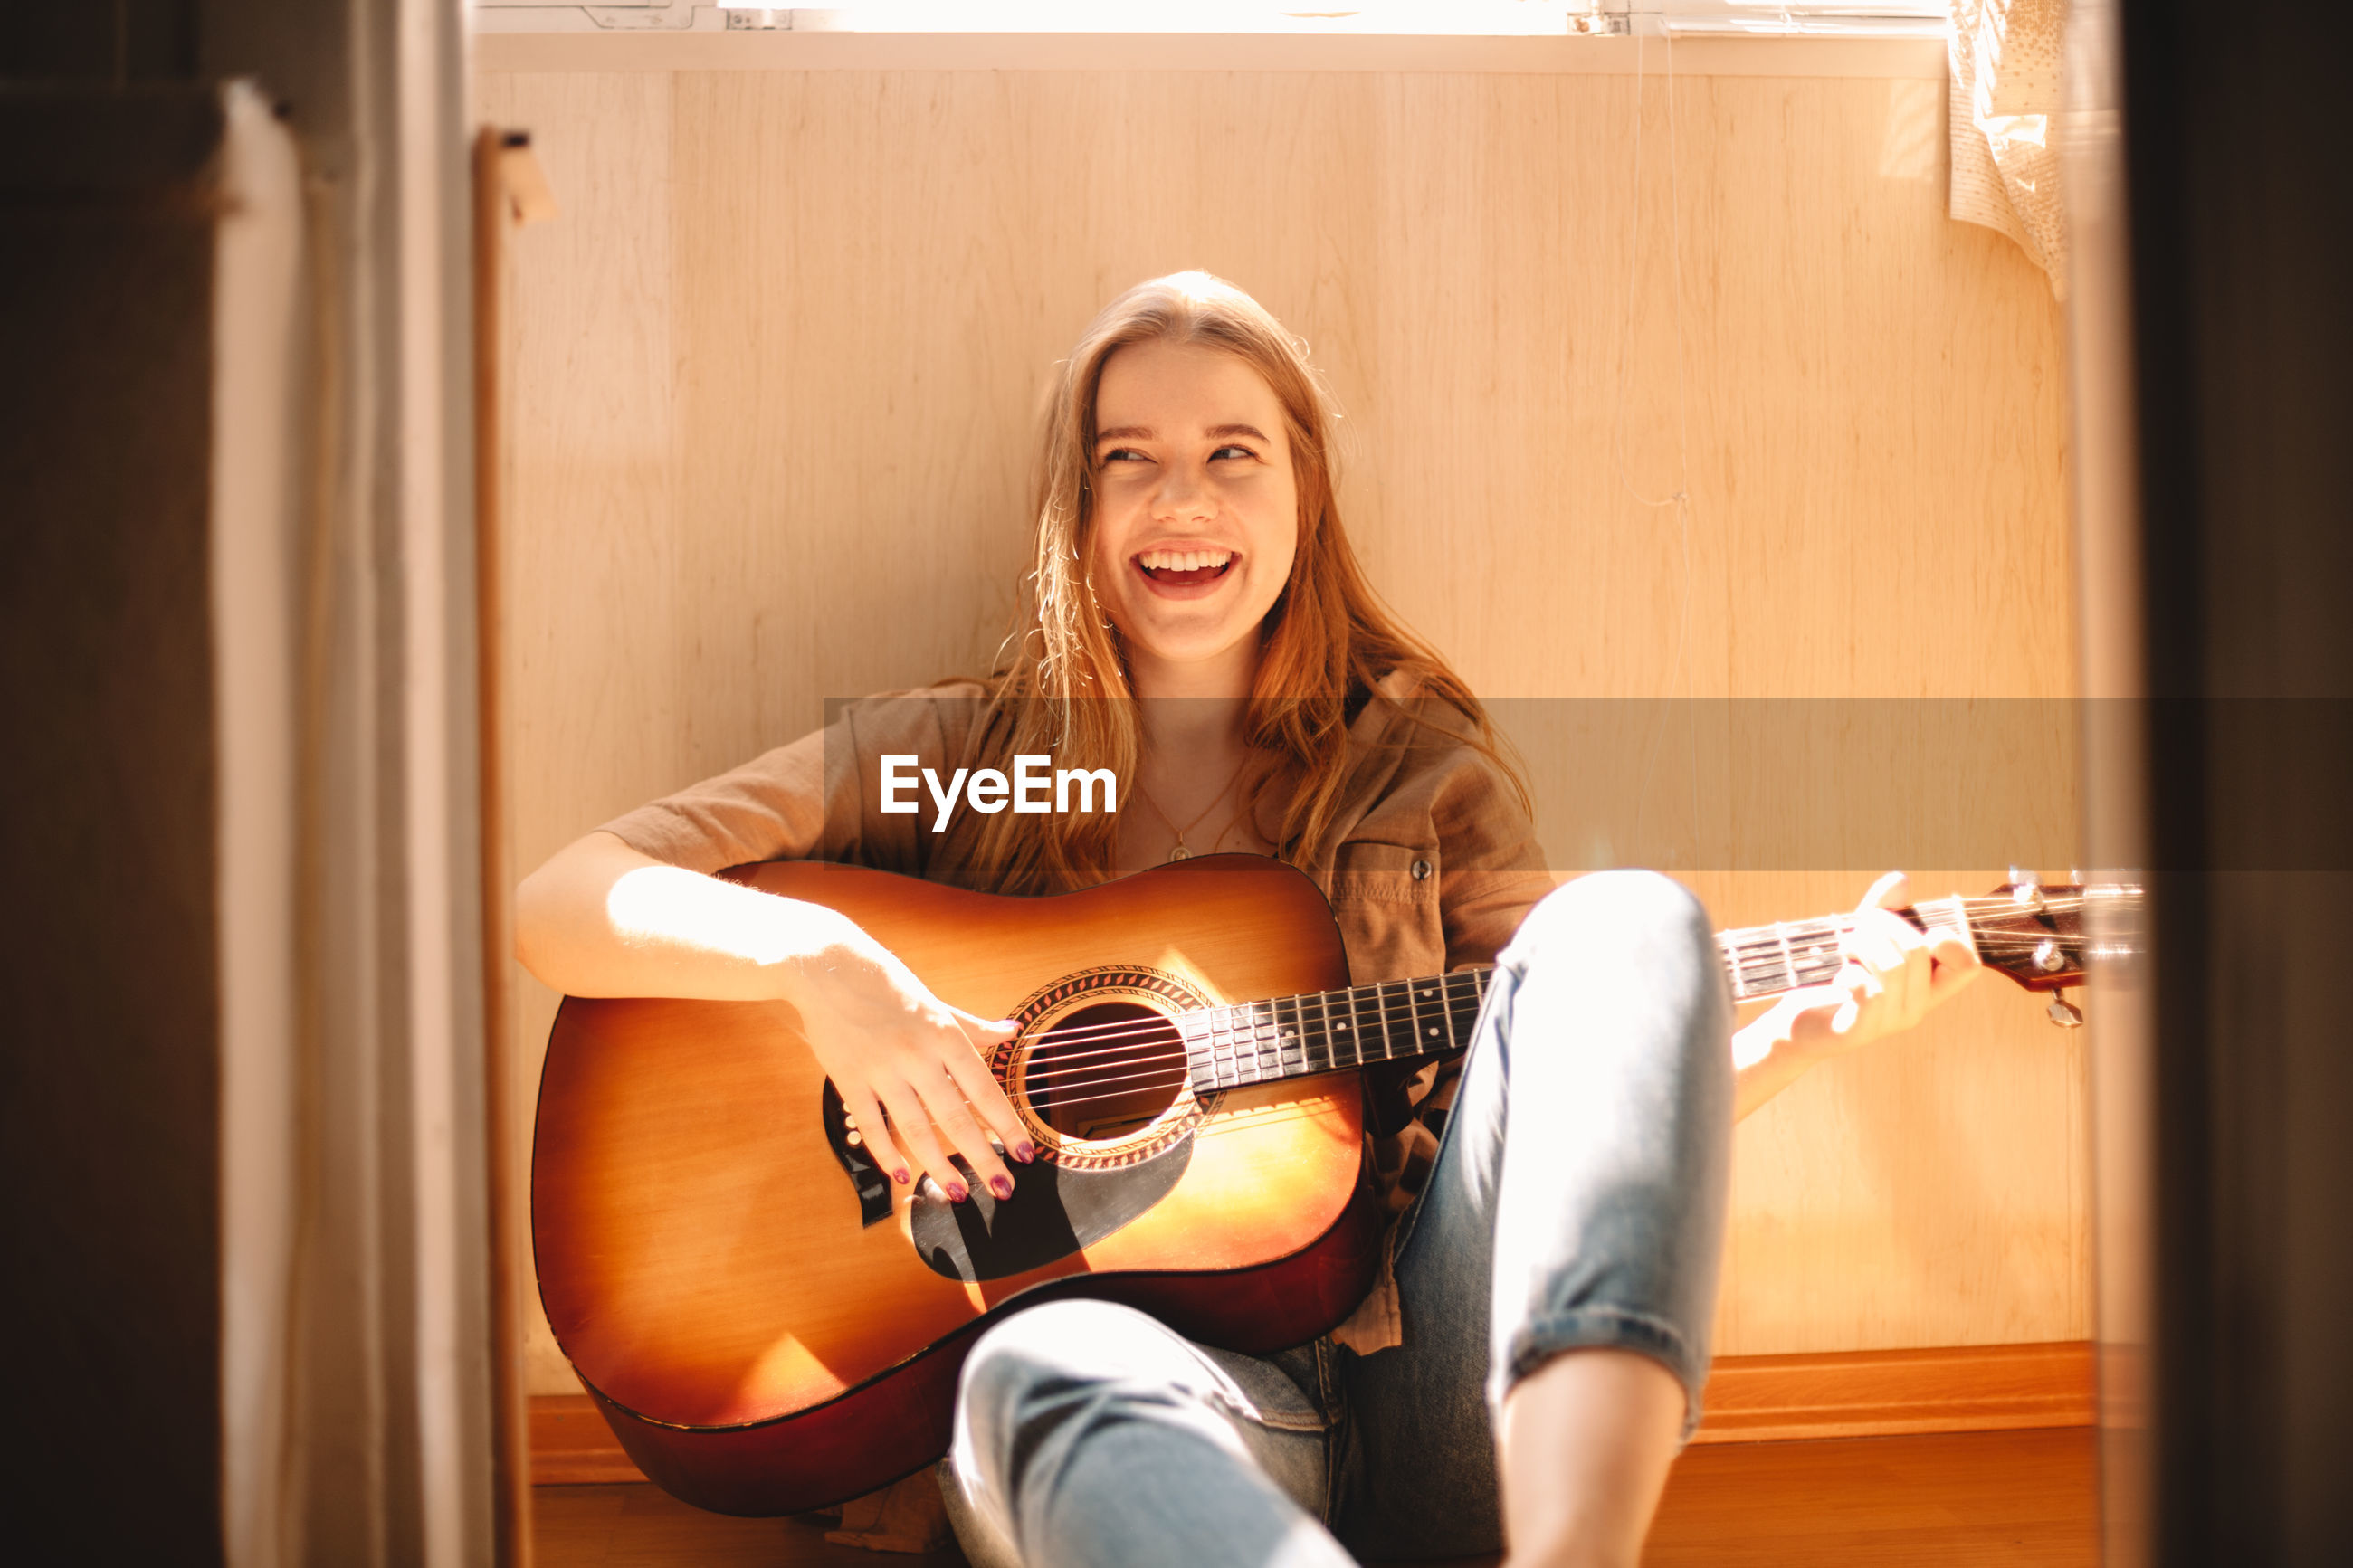 PORTRAIT OF A SMILING YOUNG WOMAN PLAYING GUITAR IN THE ROOM